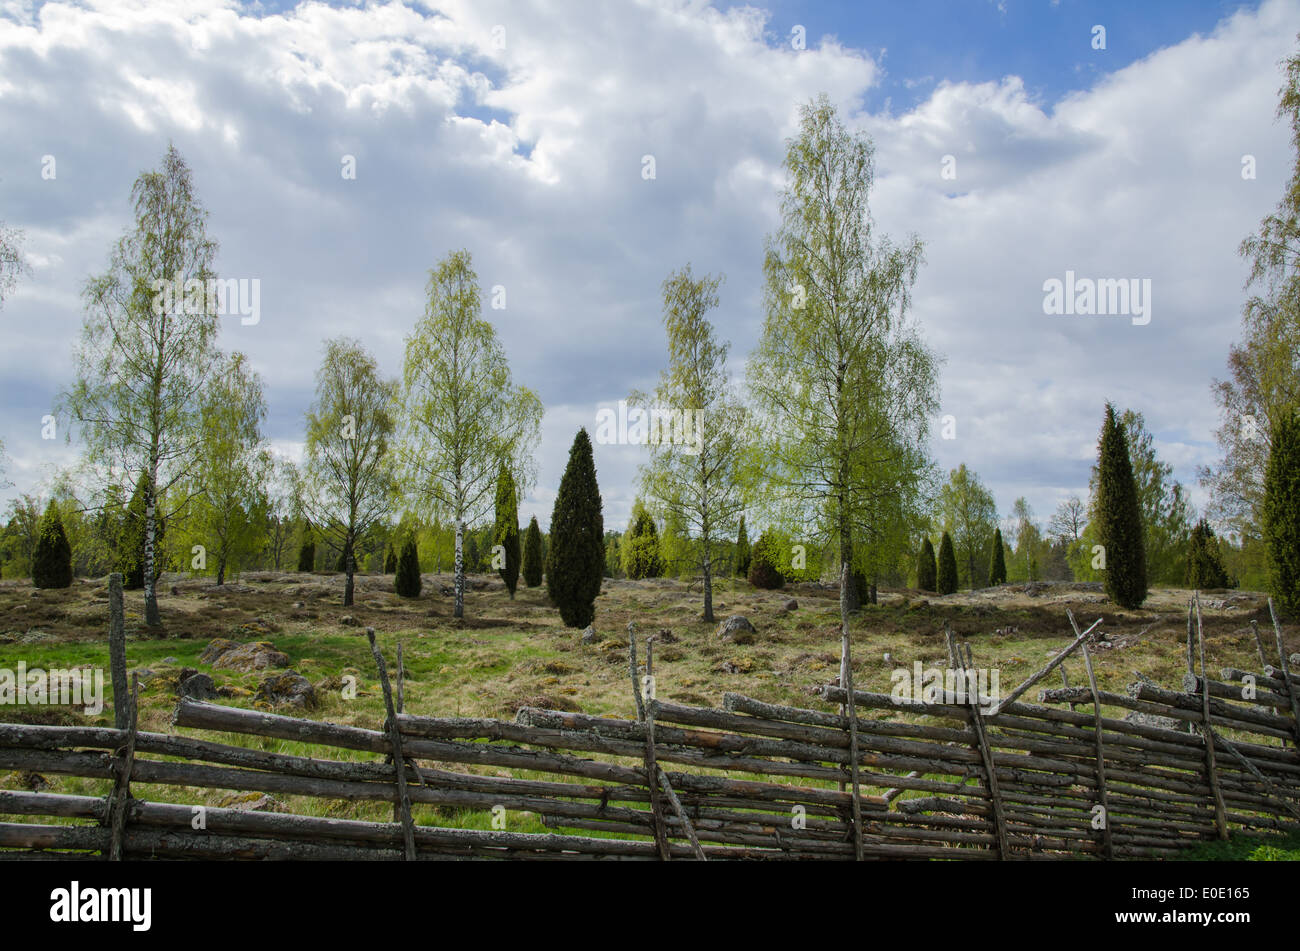 Old pastureland with birches and junipers at springtime - Stock Image